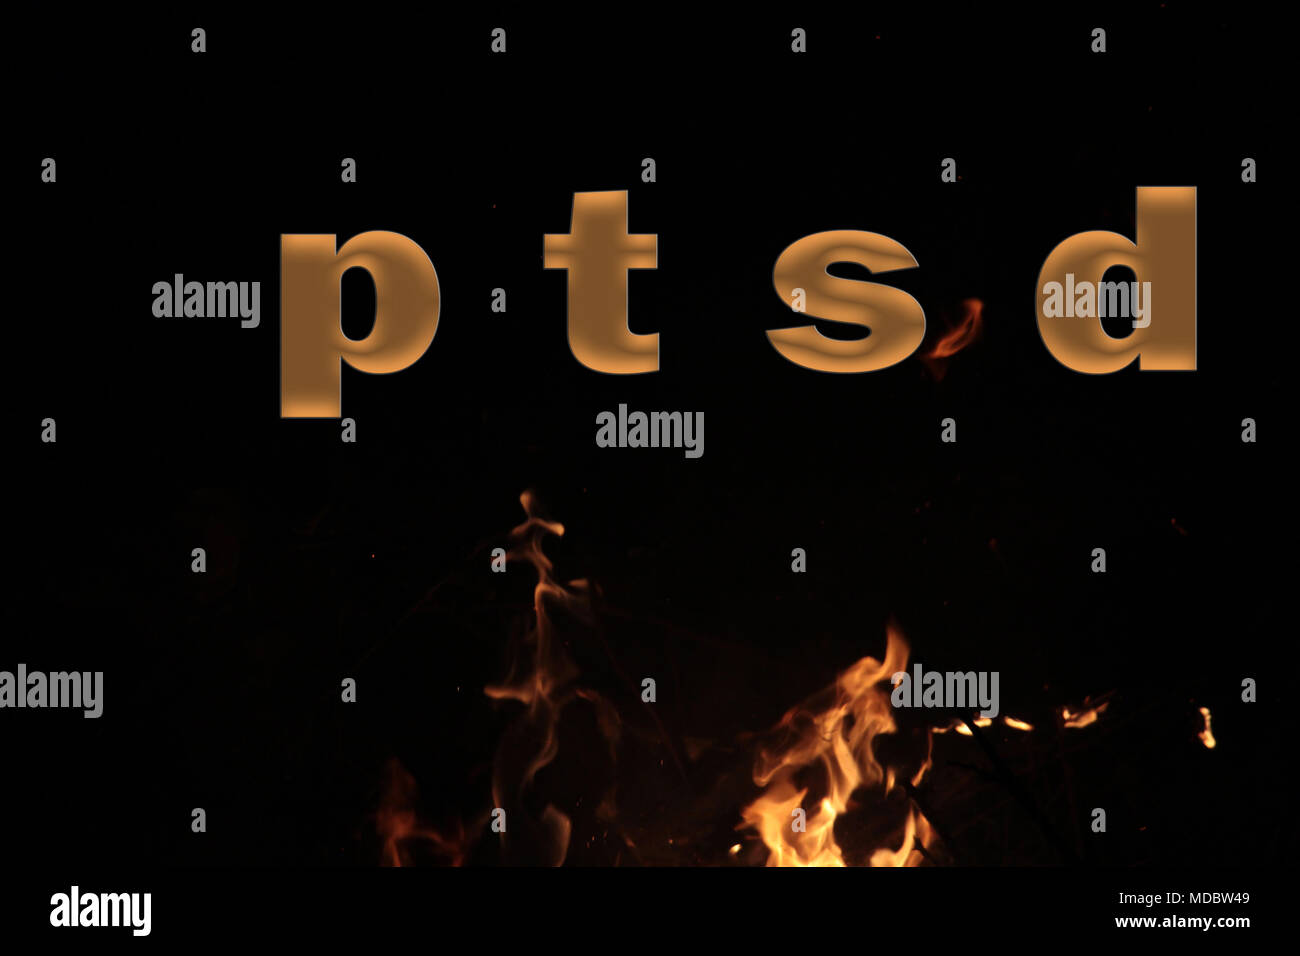 PTSD Medical abbreviation or acronym of post traumatic stress syndrome, mental disorder caused by traumatic events. Word PTSD on fire background,image - Stock Image